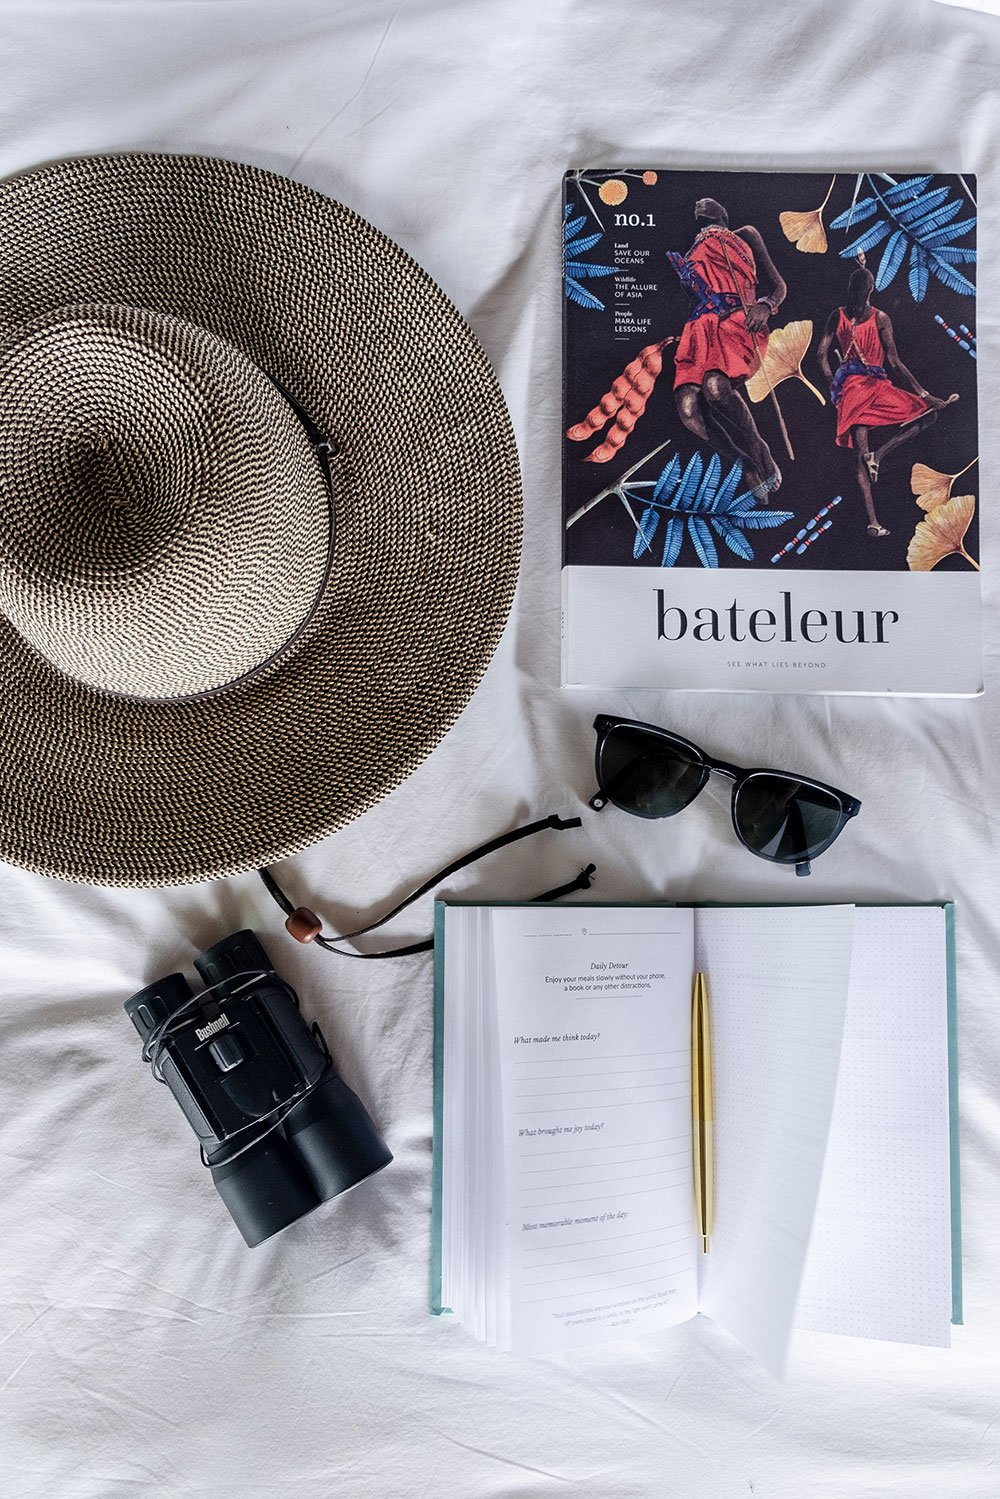 Journal on bed with binoculars, safari hat, and book